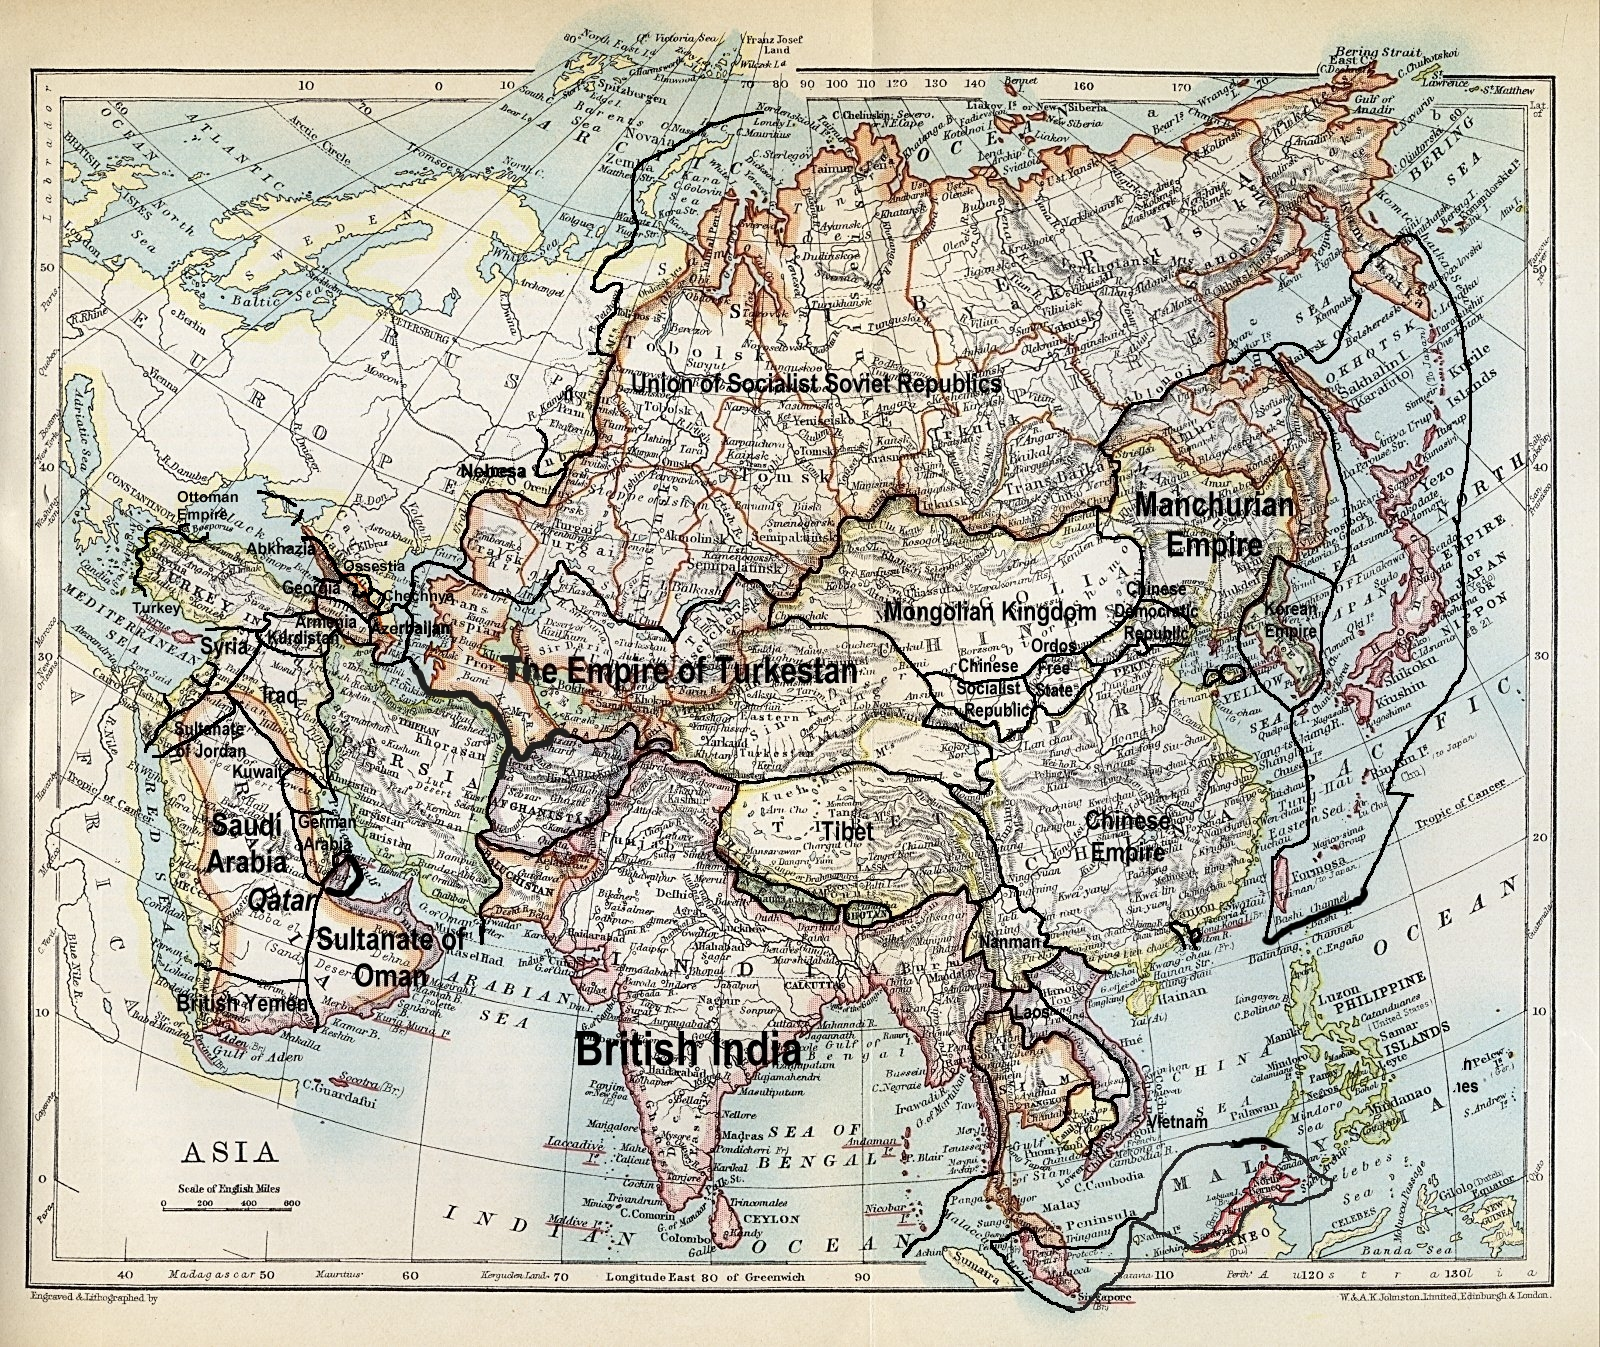 Image Map of Asia 1915jpg Alternative History – Full Map of Asia